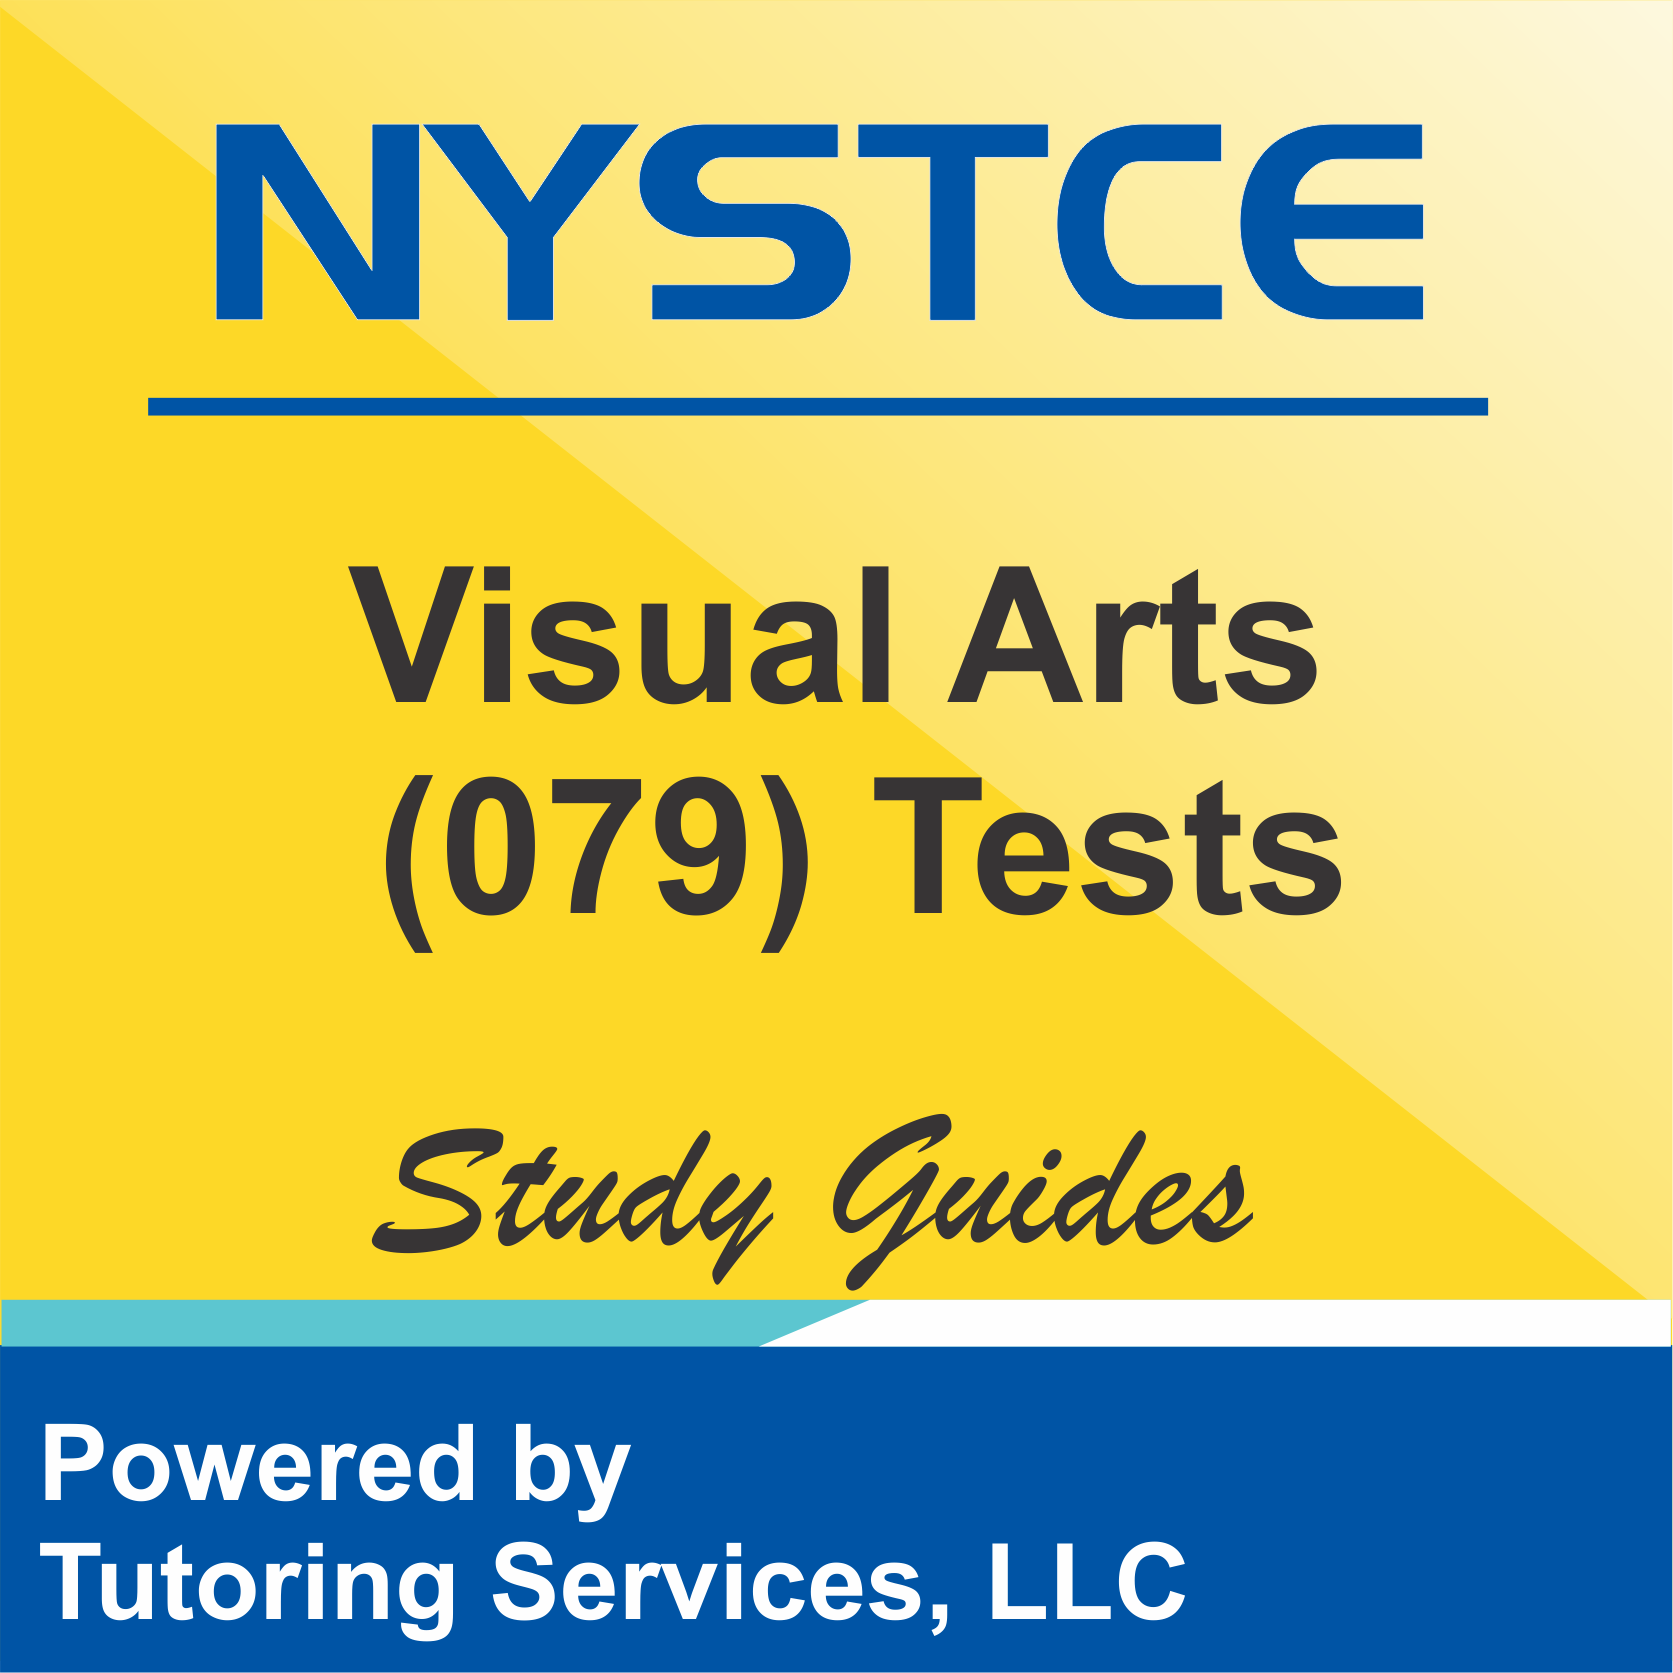 NYSTCE New York Educator Test Details for Visual Arts 079